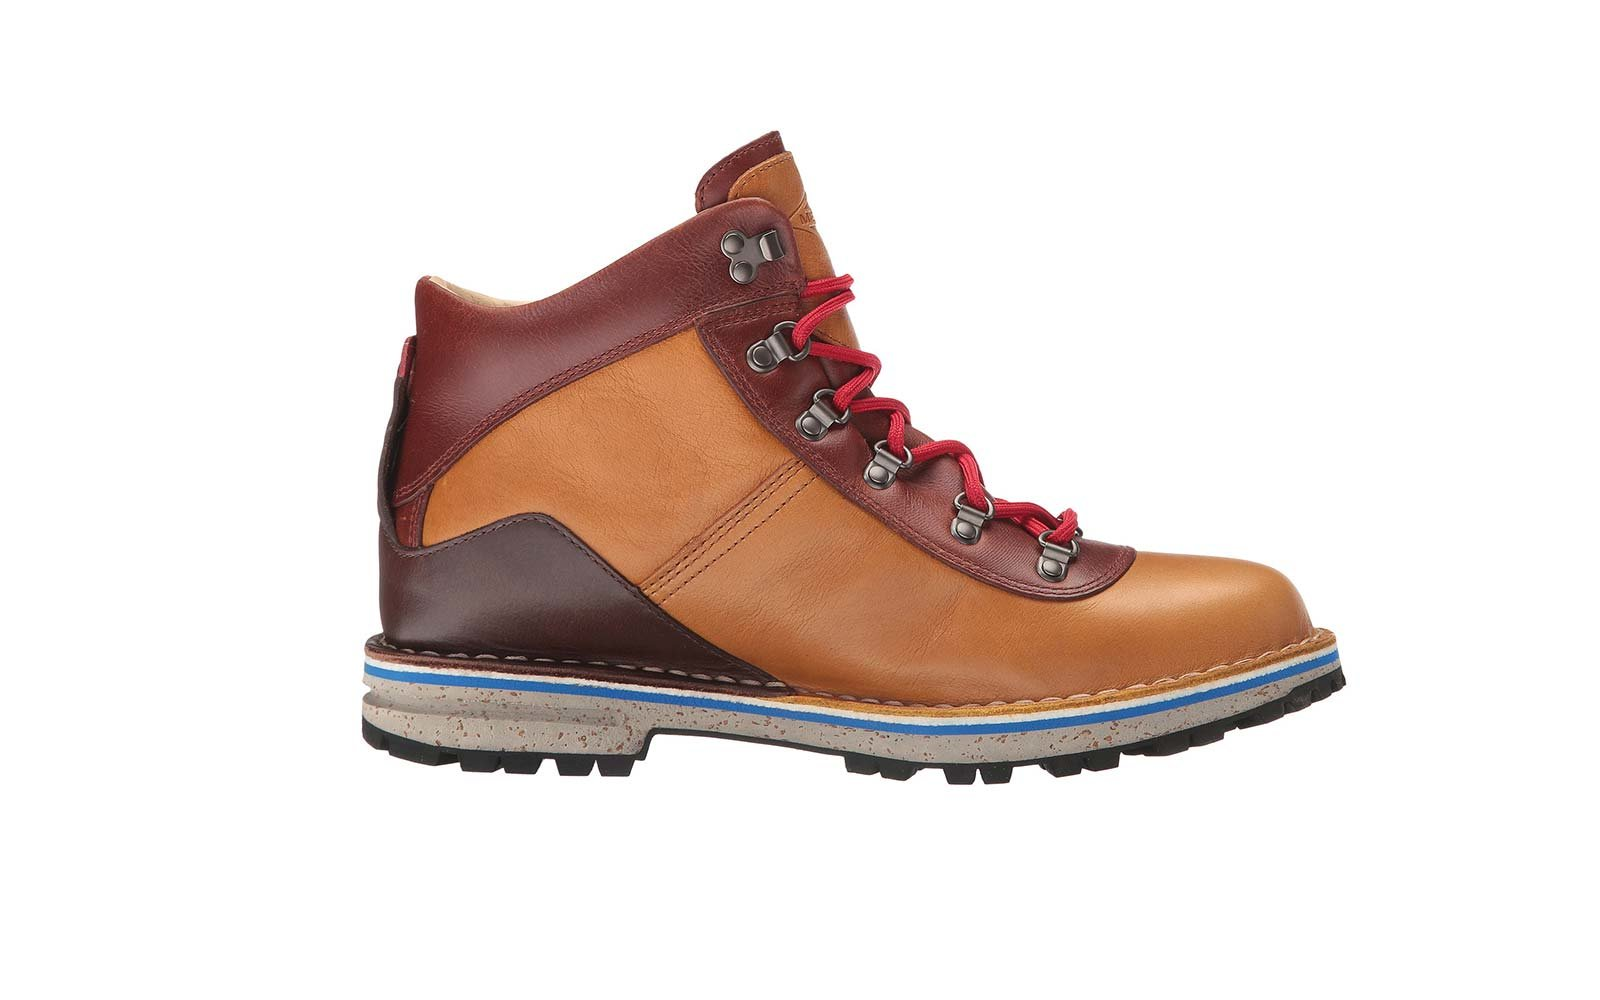 Merrell Leather Female Hiking Boots